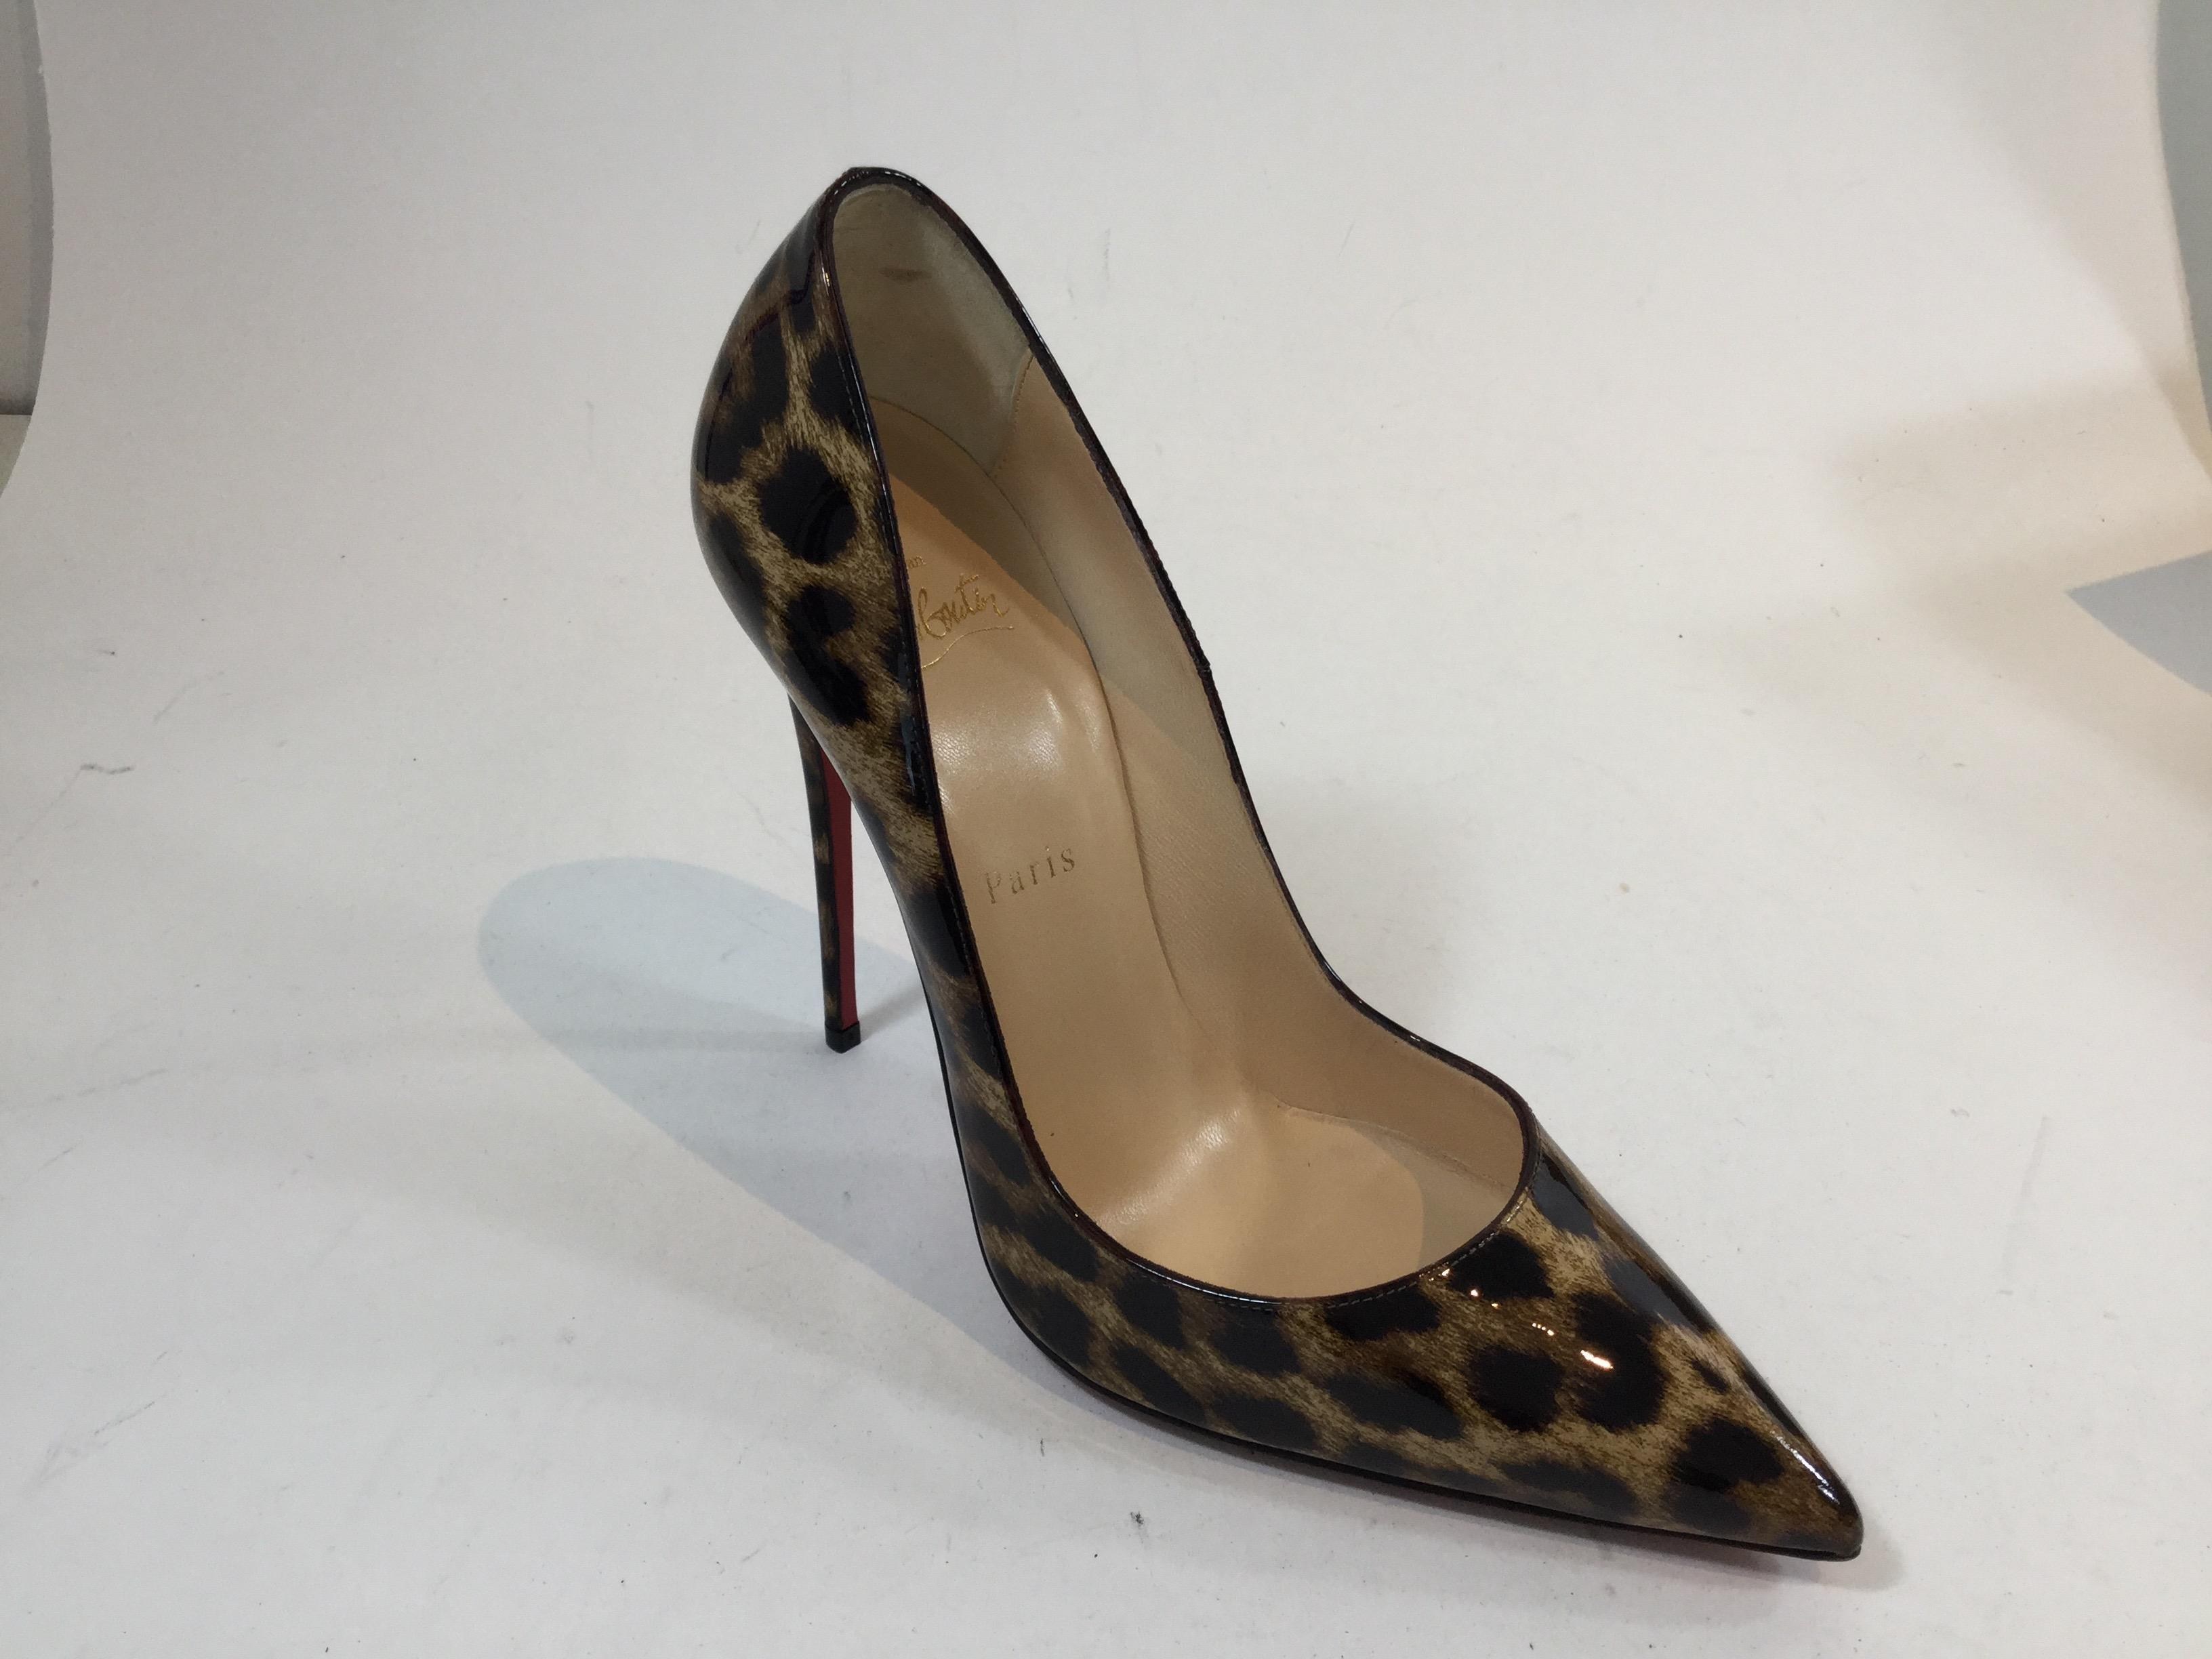 a19b6fccd516 Christian Louboutin Brown So Kate 120 120 120 Leopard Print Patent Leather  Pumps Size US 9.5 Regular (M